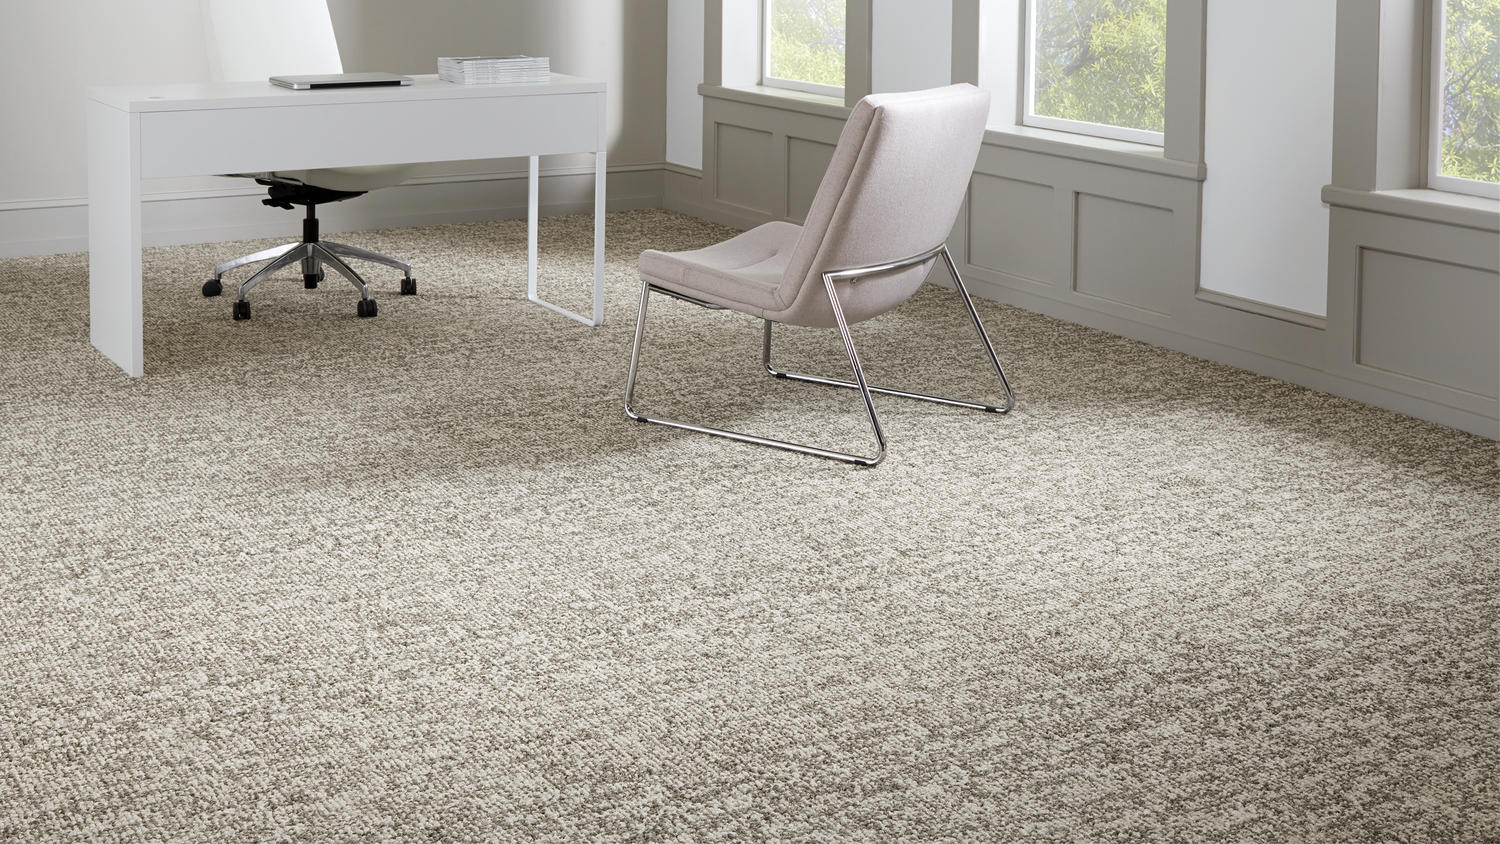 commercial carpet FZUGPXD